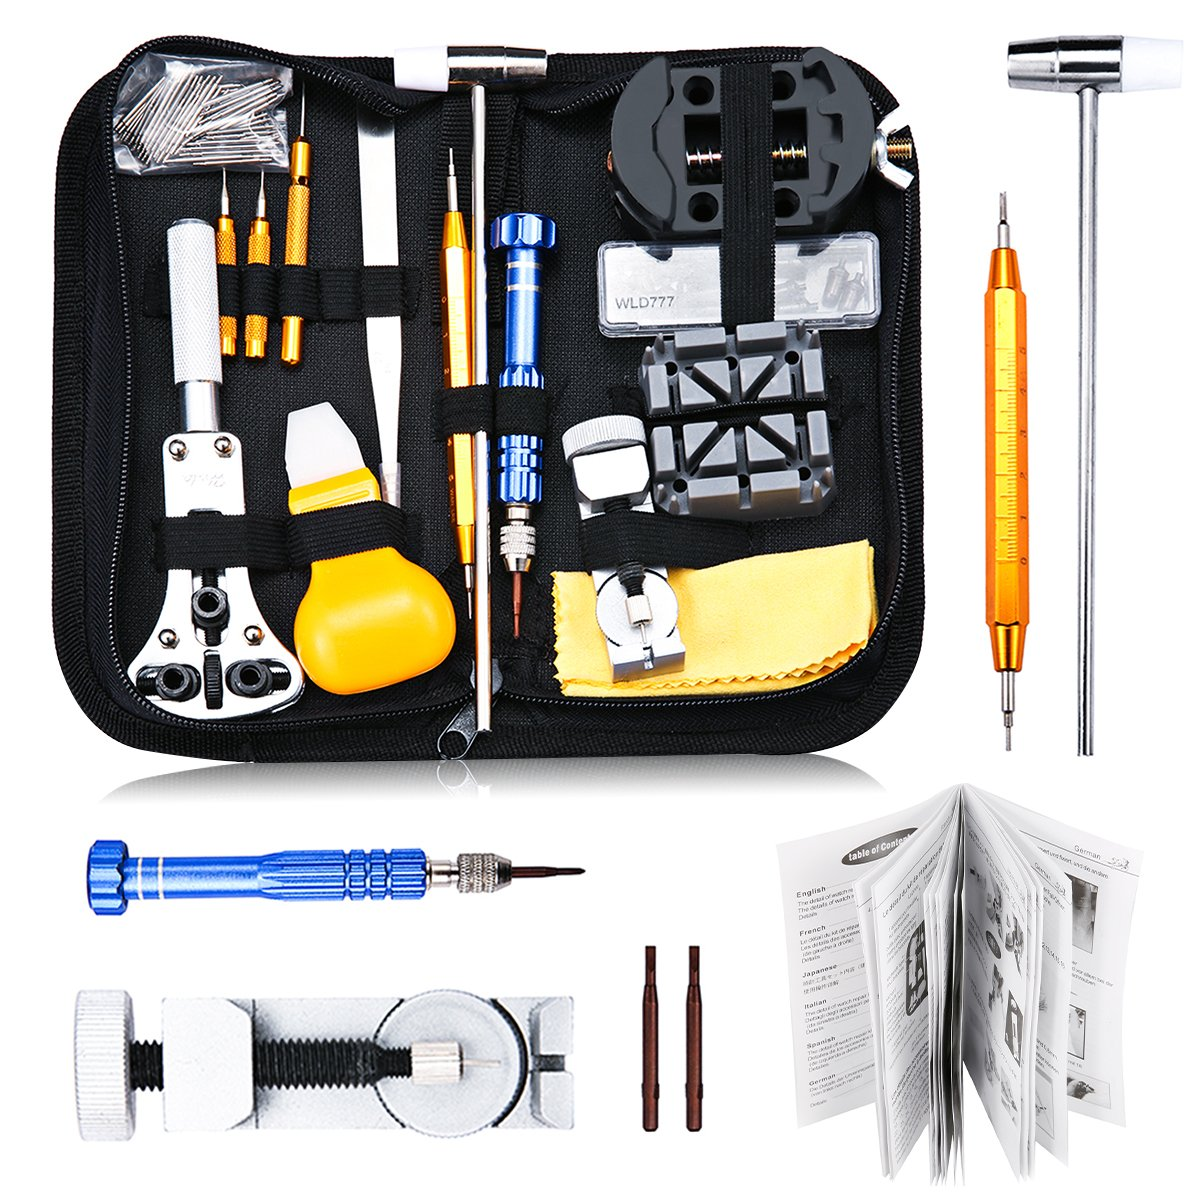 Watch Repair Kit, Baban 147 Pcs Watch Tool Kit Professional Spring Bar Tool Set Watch Band Link Pin Tools Set Upgraded Watch Band Remover, Watchmaker's Maintenance Service Manual with Carrying Case